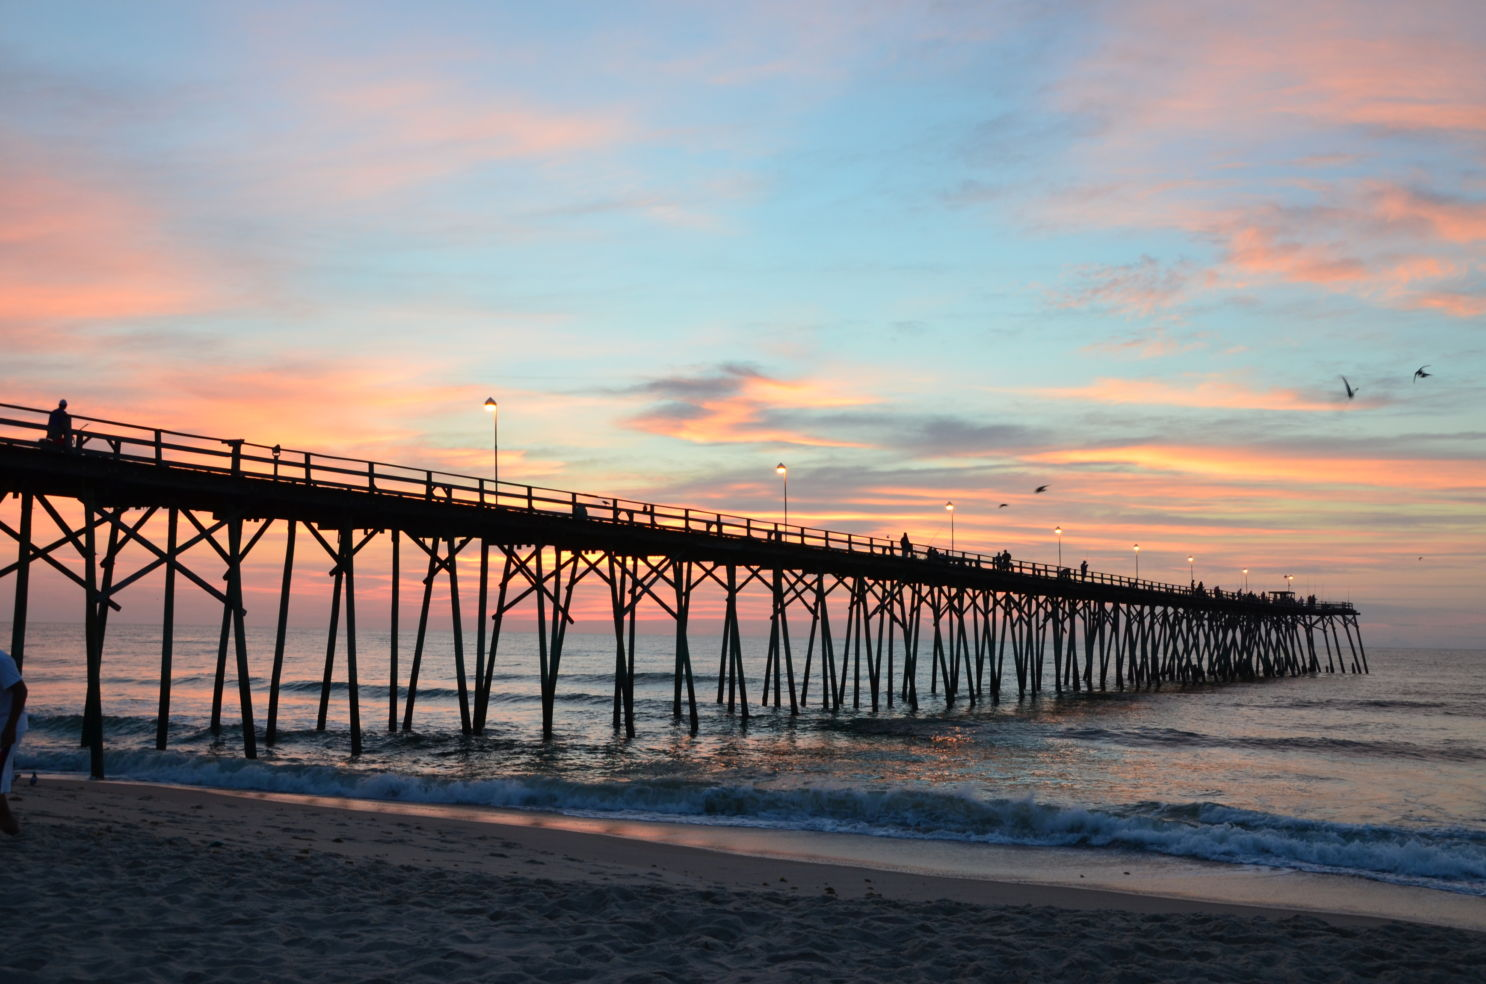 Sunrise, Kure Beach, North Carolina